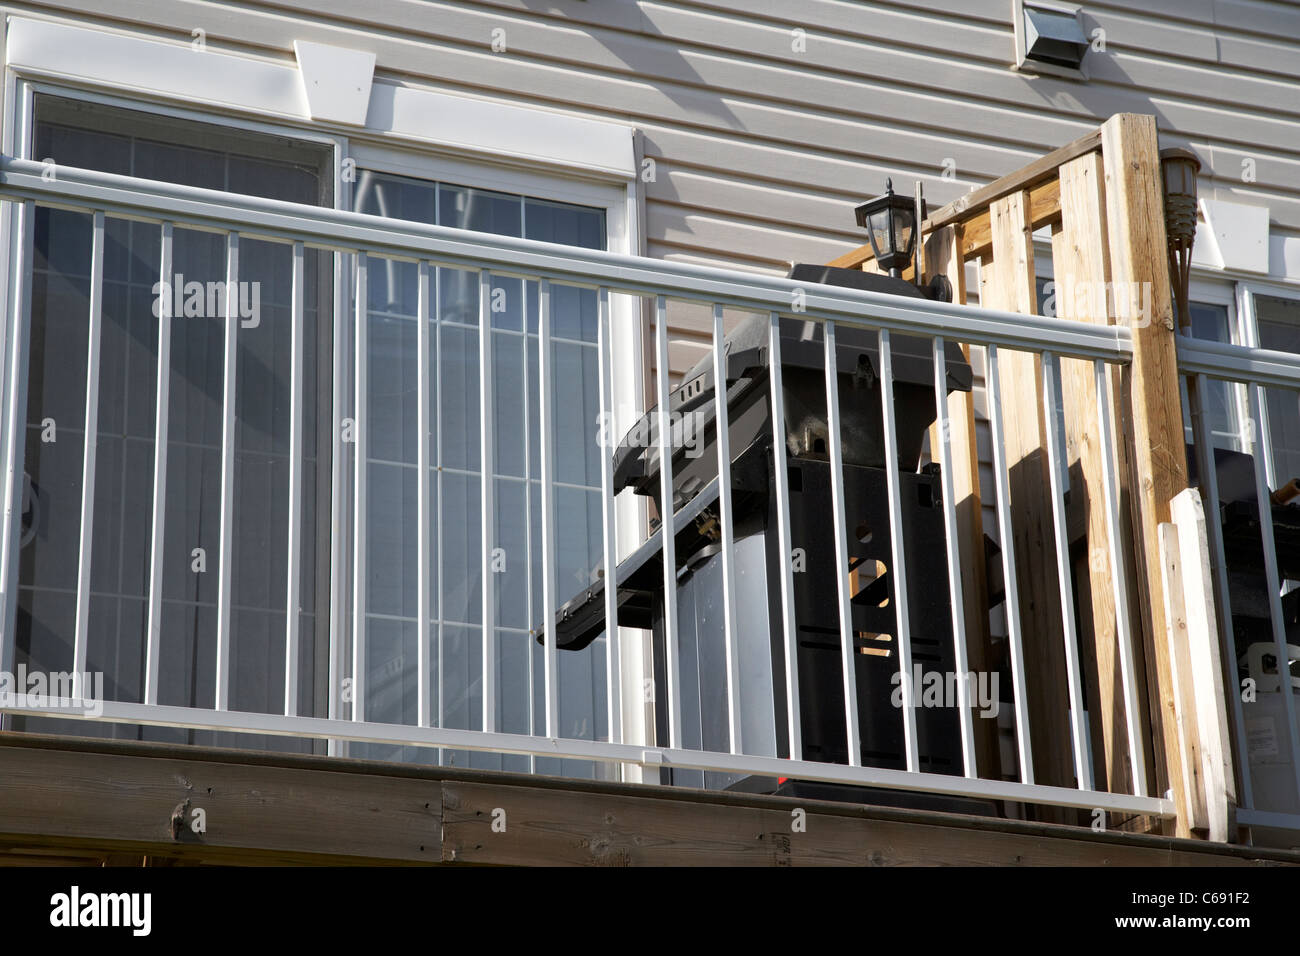 gas bbq on balcony of townhouse in Saskatoon Saskatchewan Canada - Stock Image